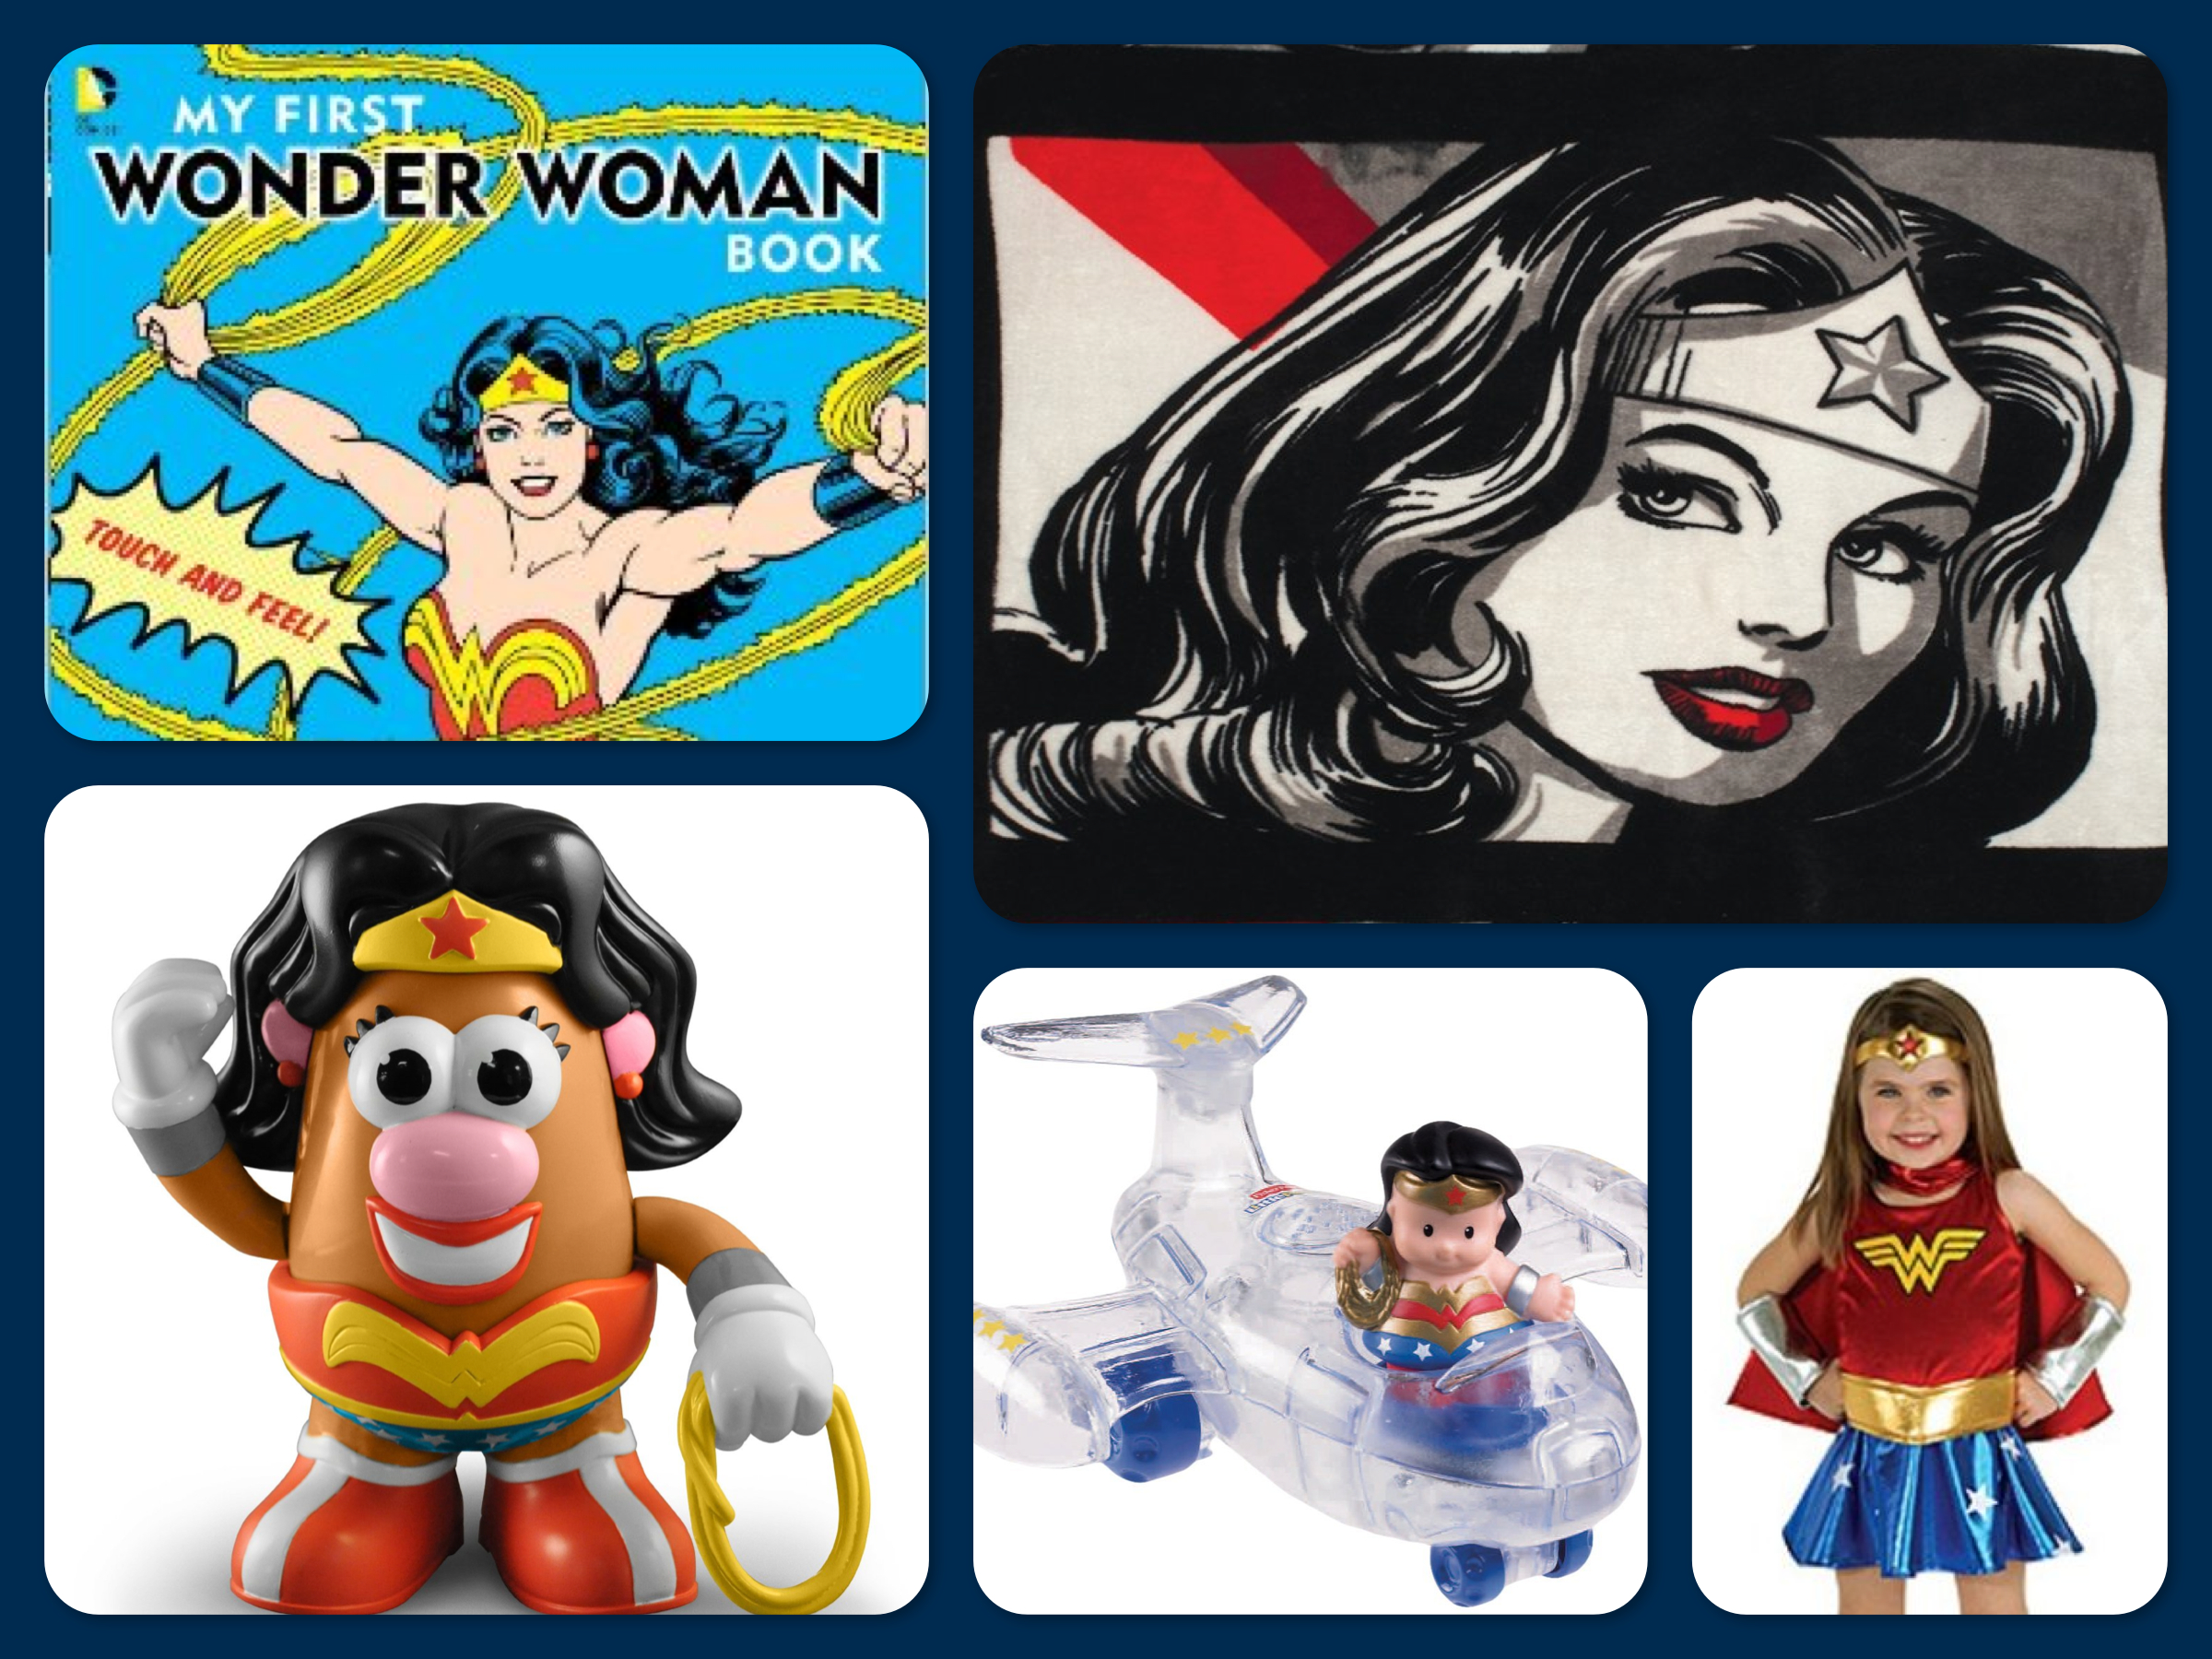 Wonder Woman Toys, Books, Costumes & Blankets